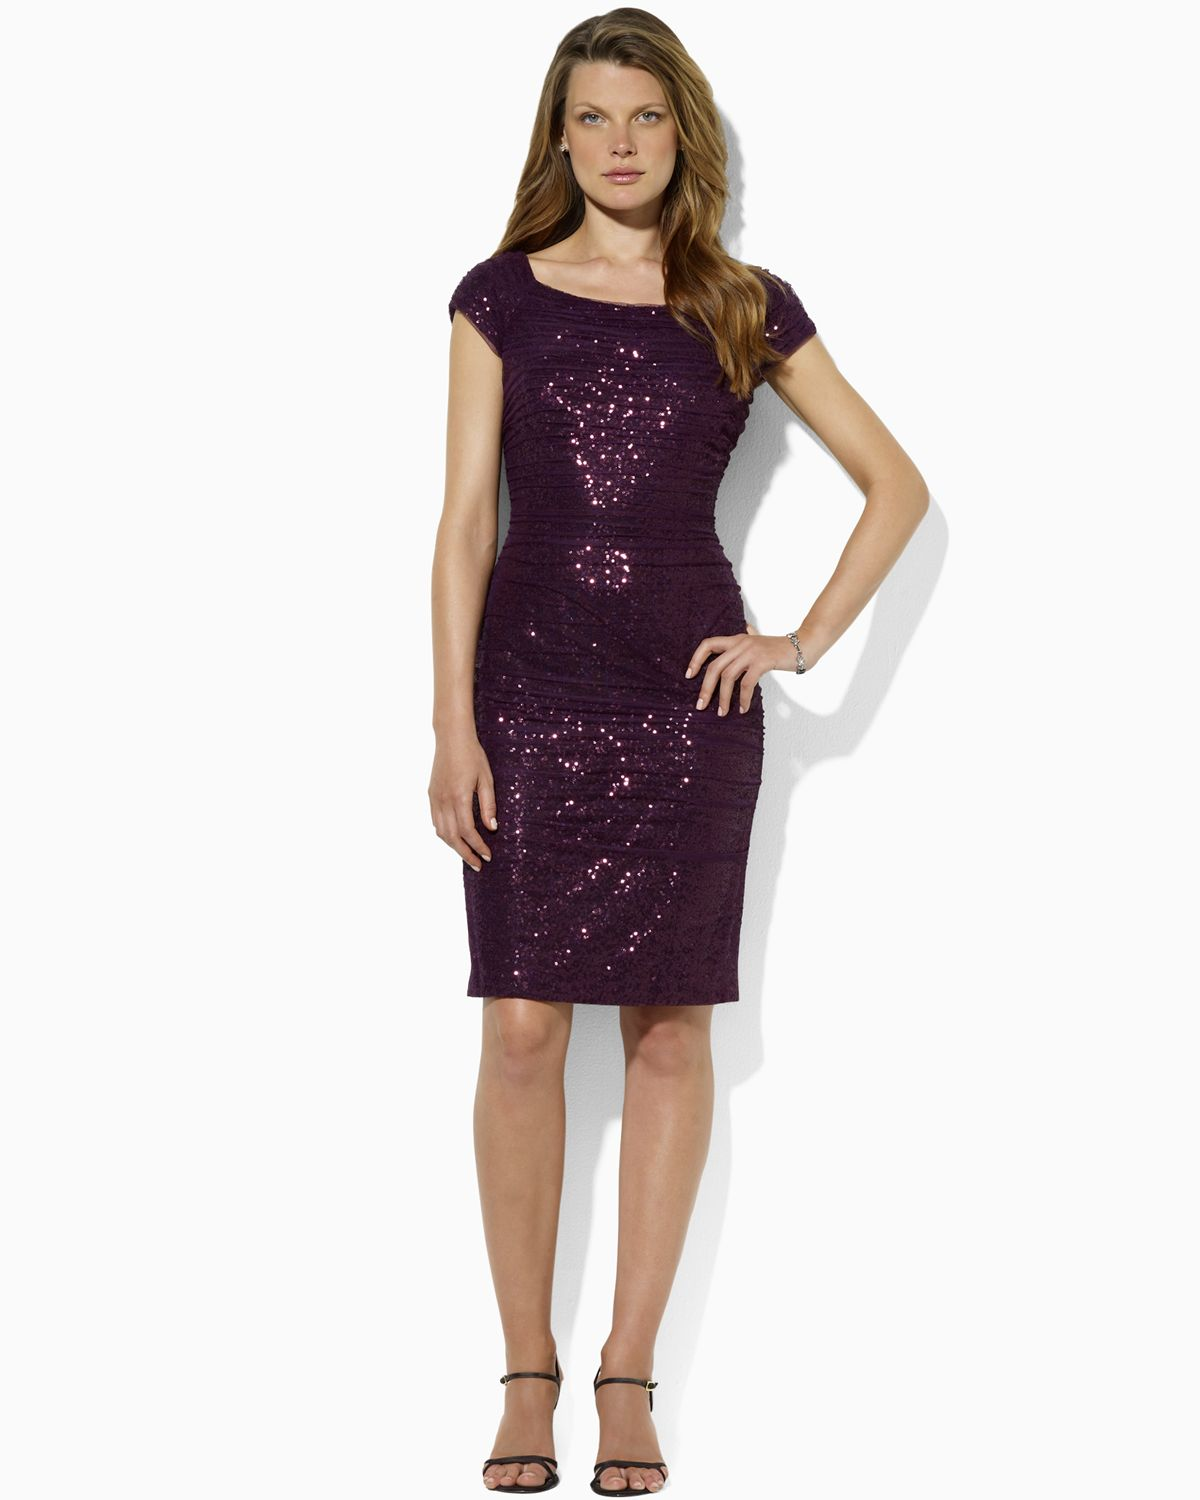 Wedding Purple Sequin Dress lauren by ralph open neck sequin dress in purple lyst gallery